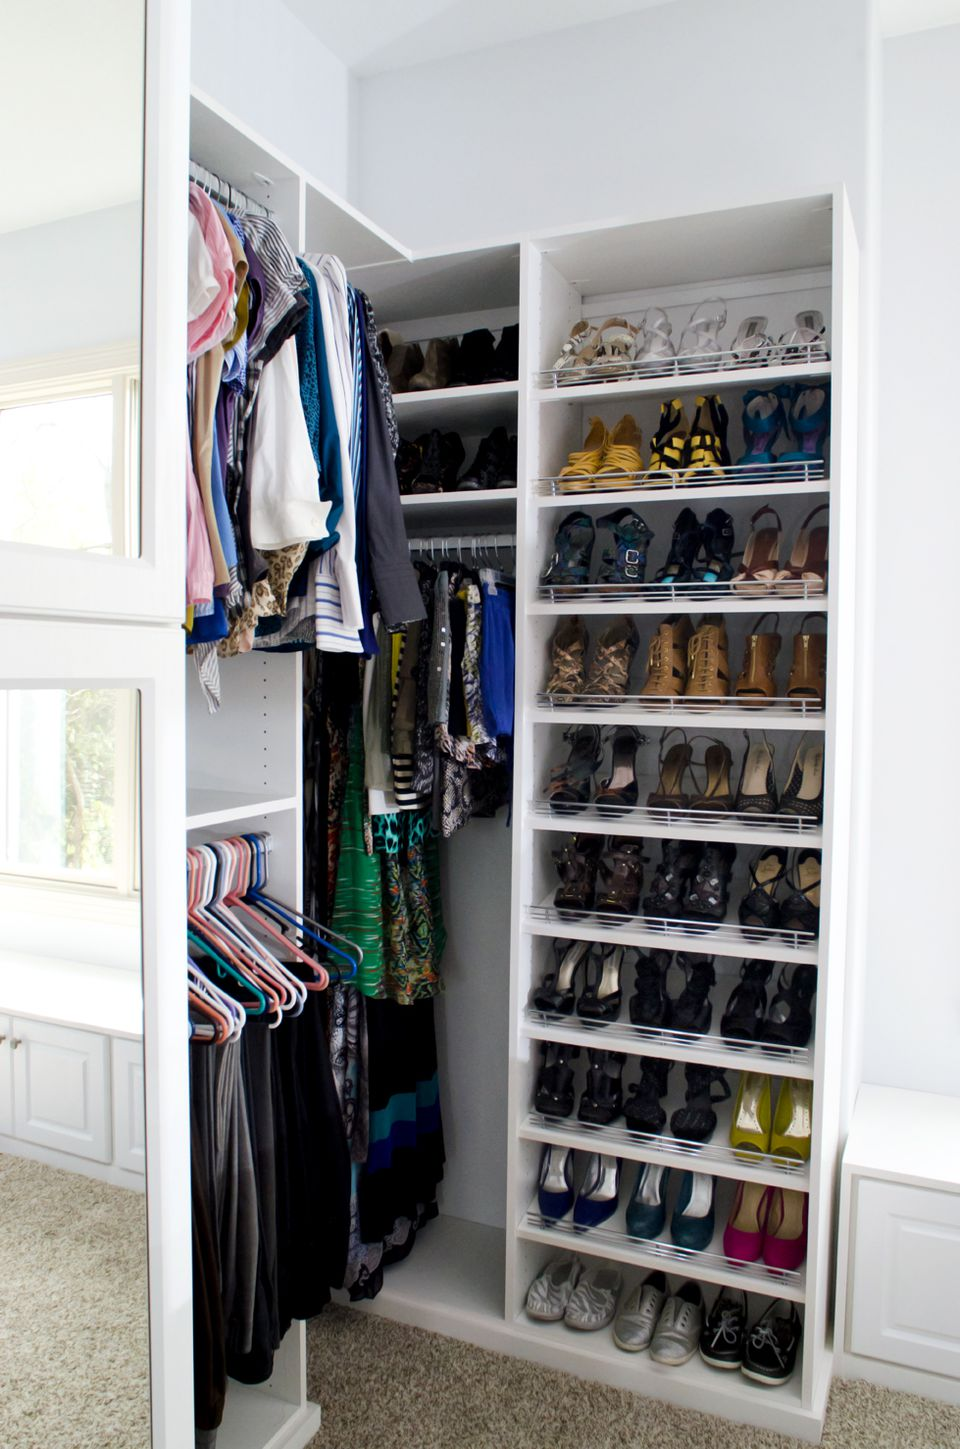 How to choose a closet system No closet hanging solutions